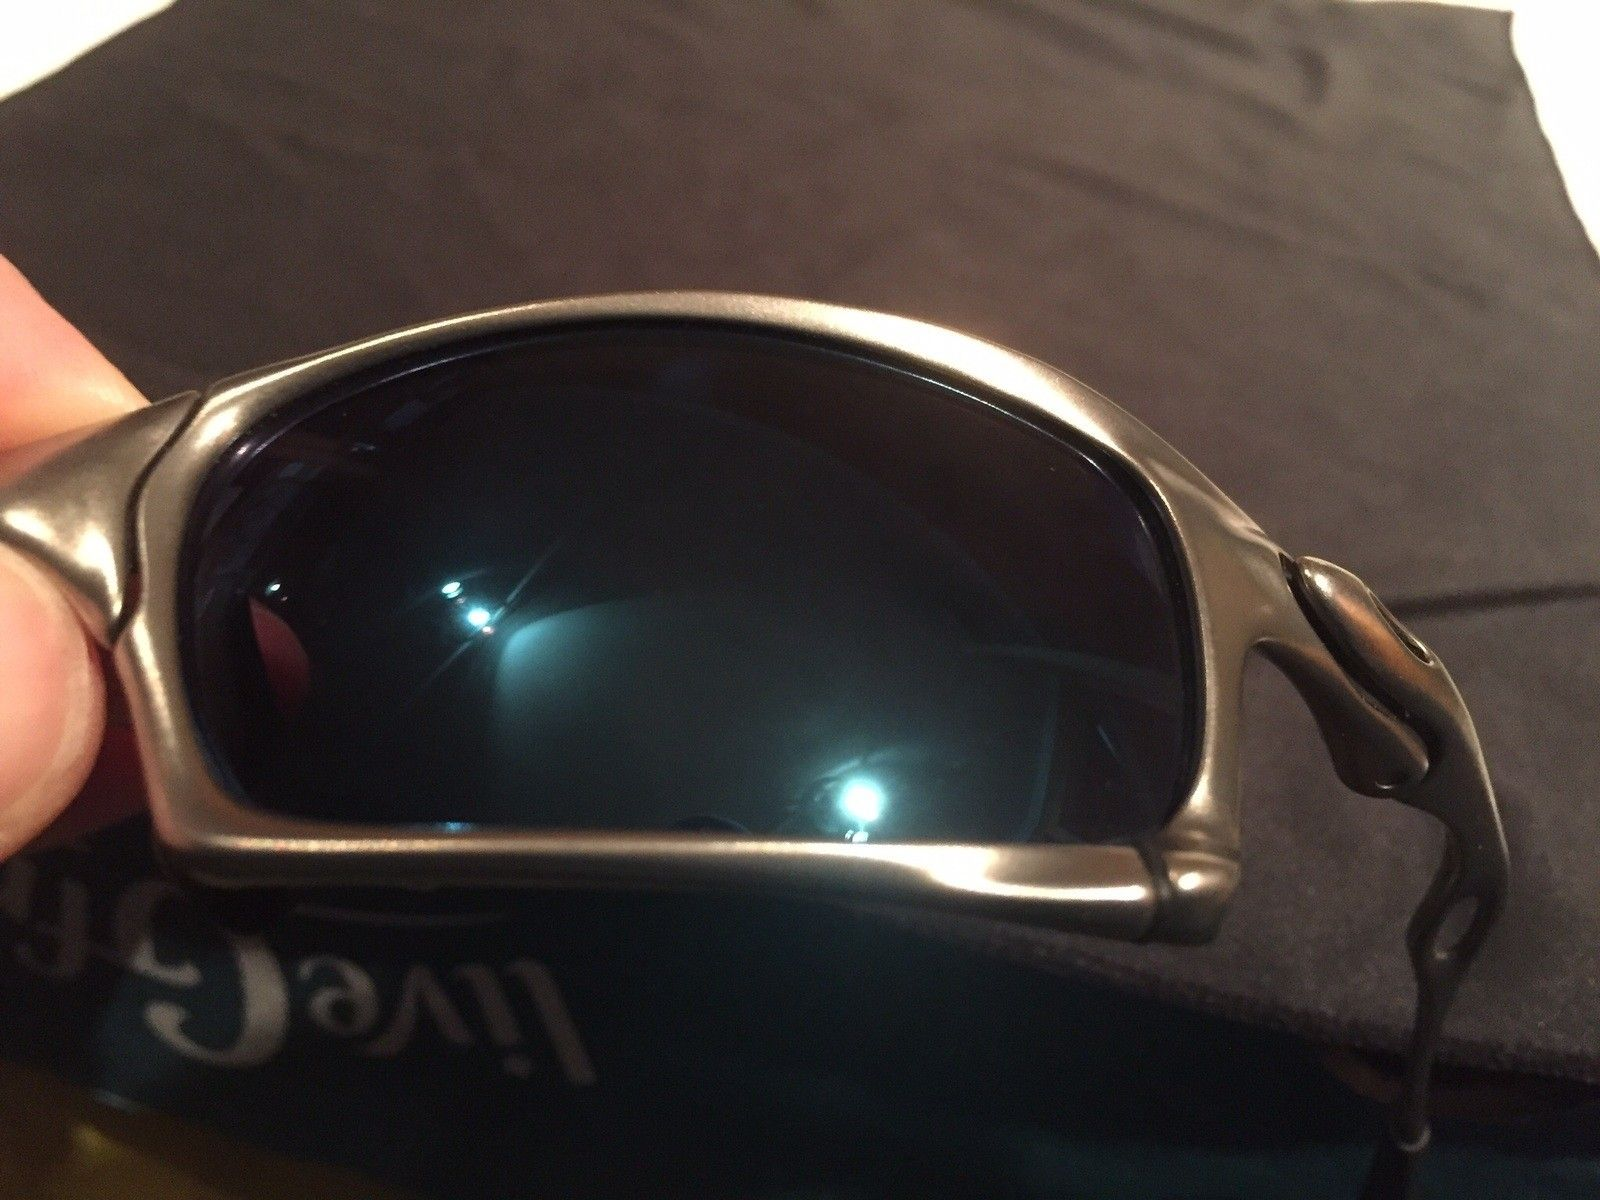 XS plasma with blue iridium lenses - image.jpg